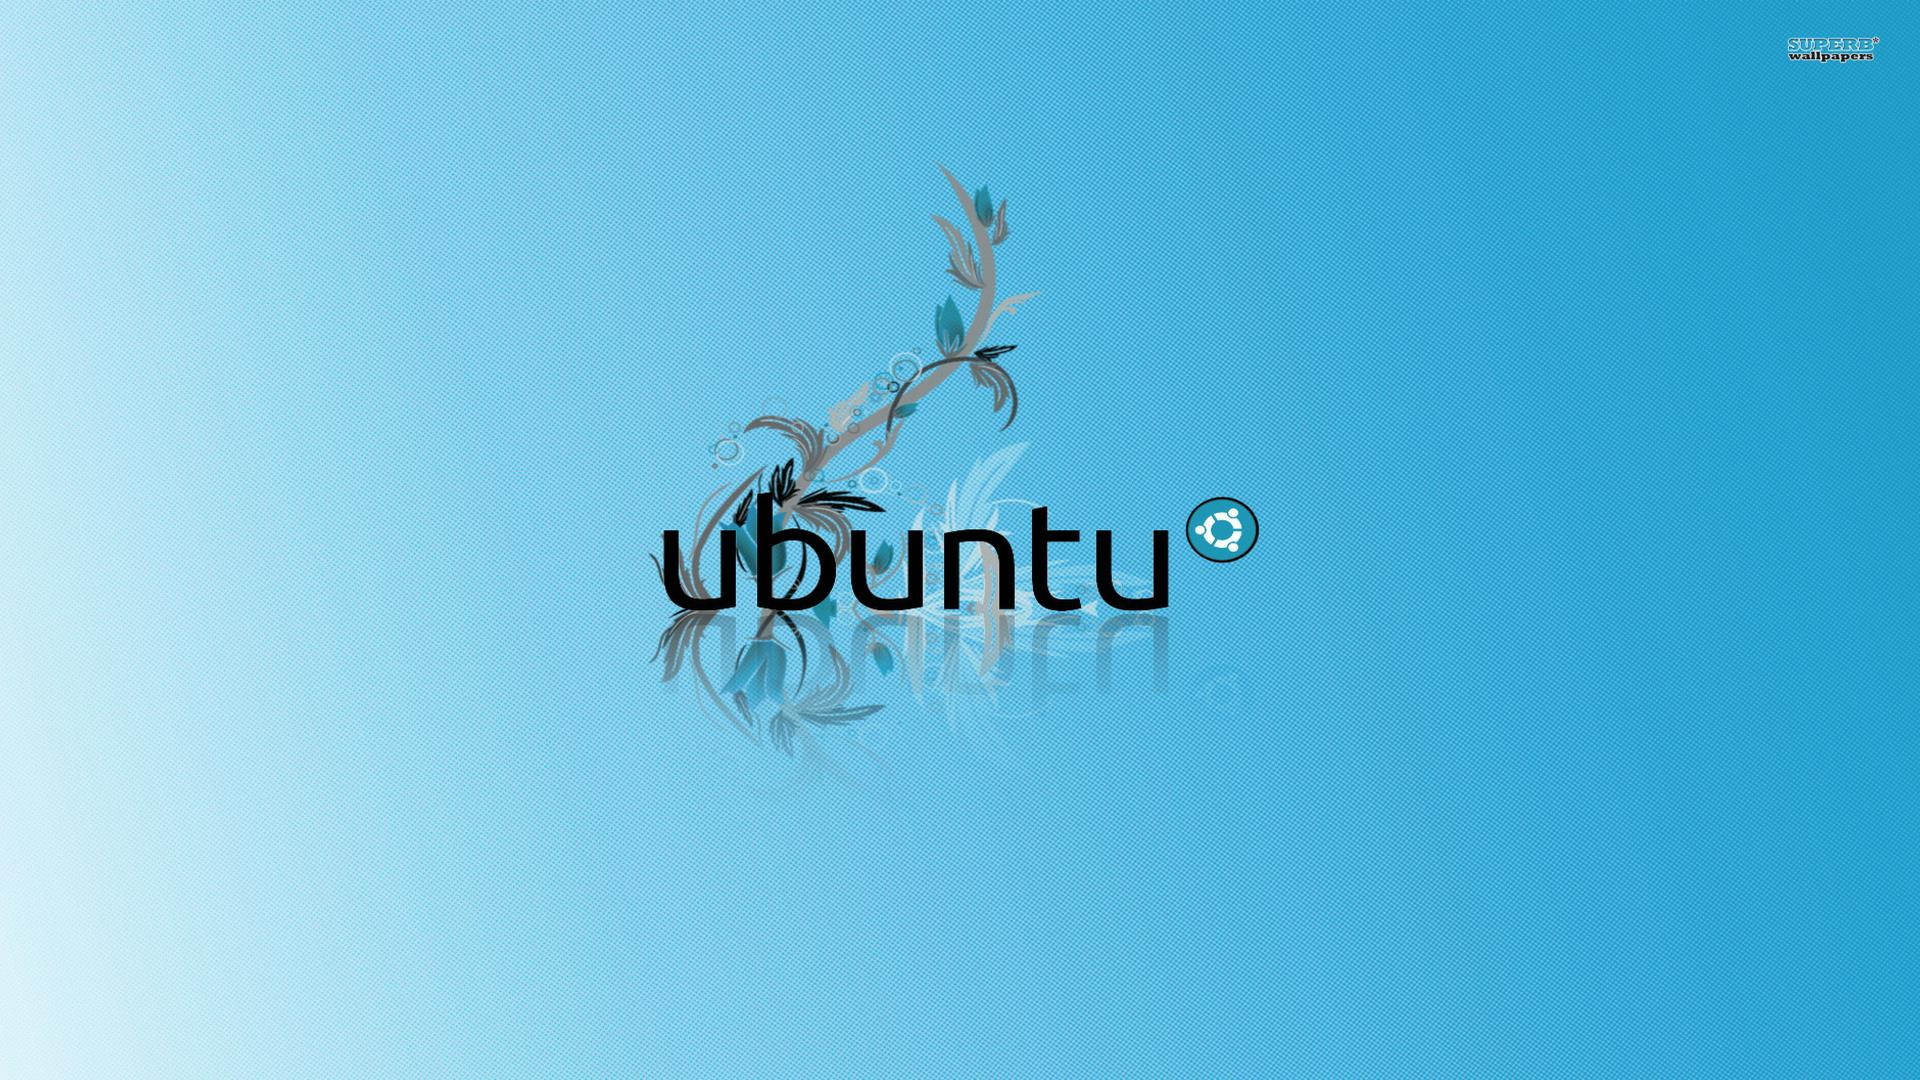 linux-ubuntu-wallpaper-OS-free-hi-tech-Open_3